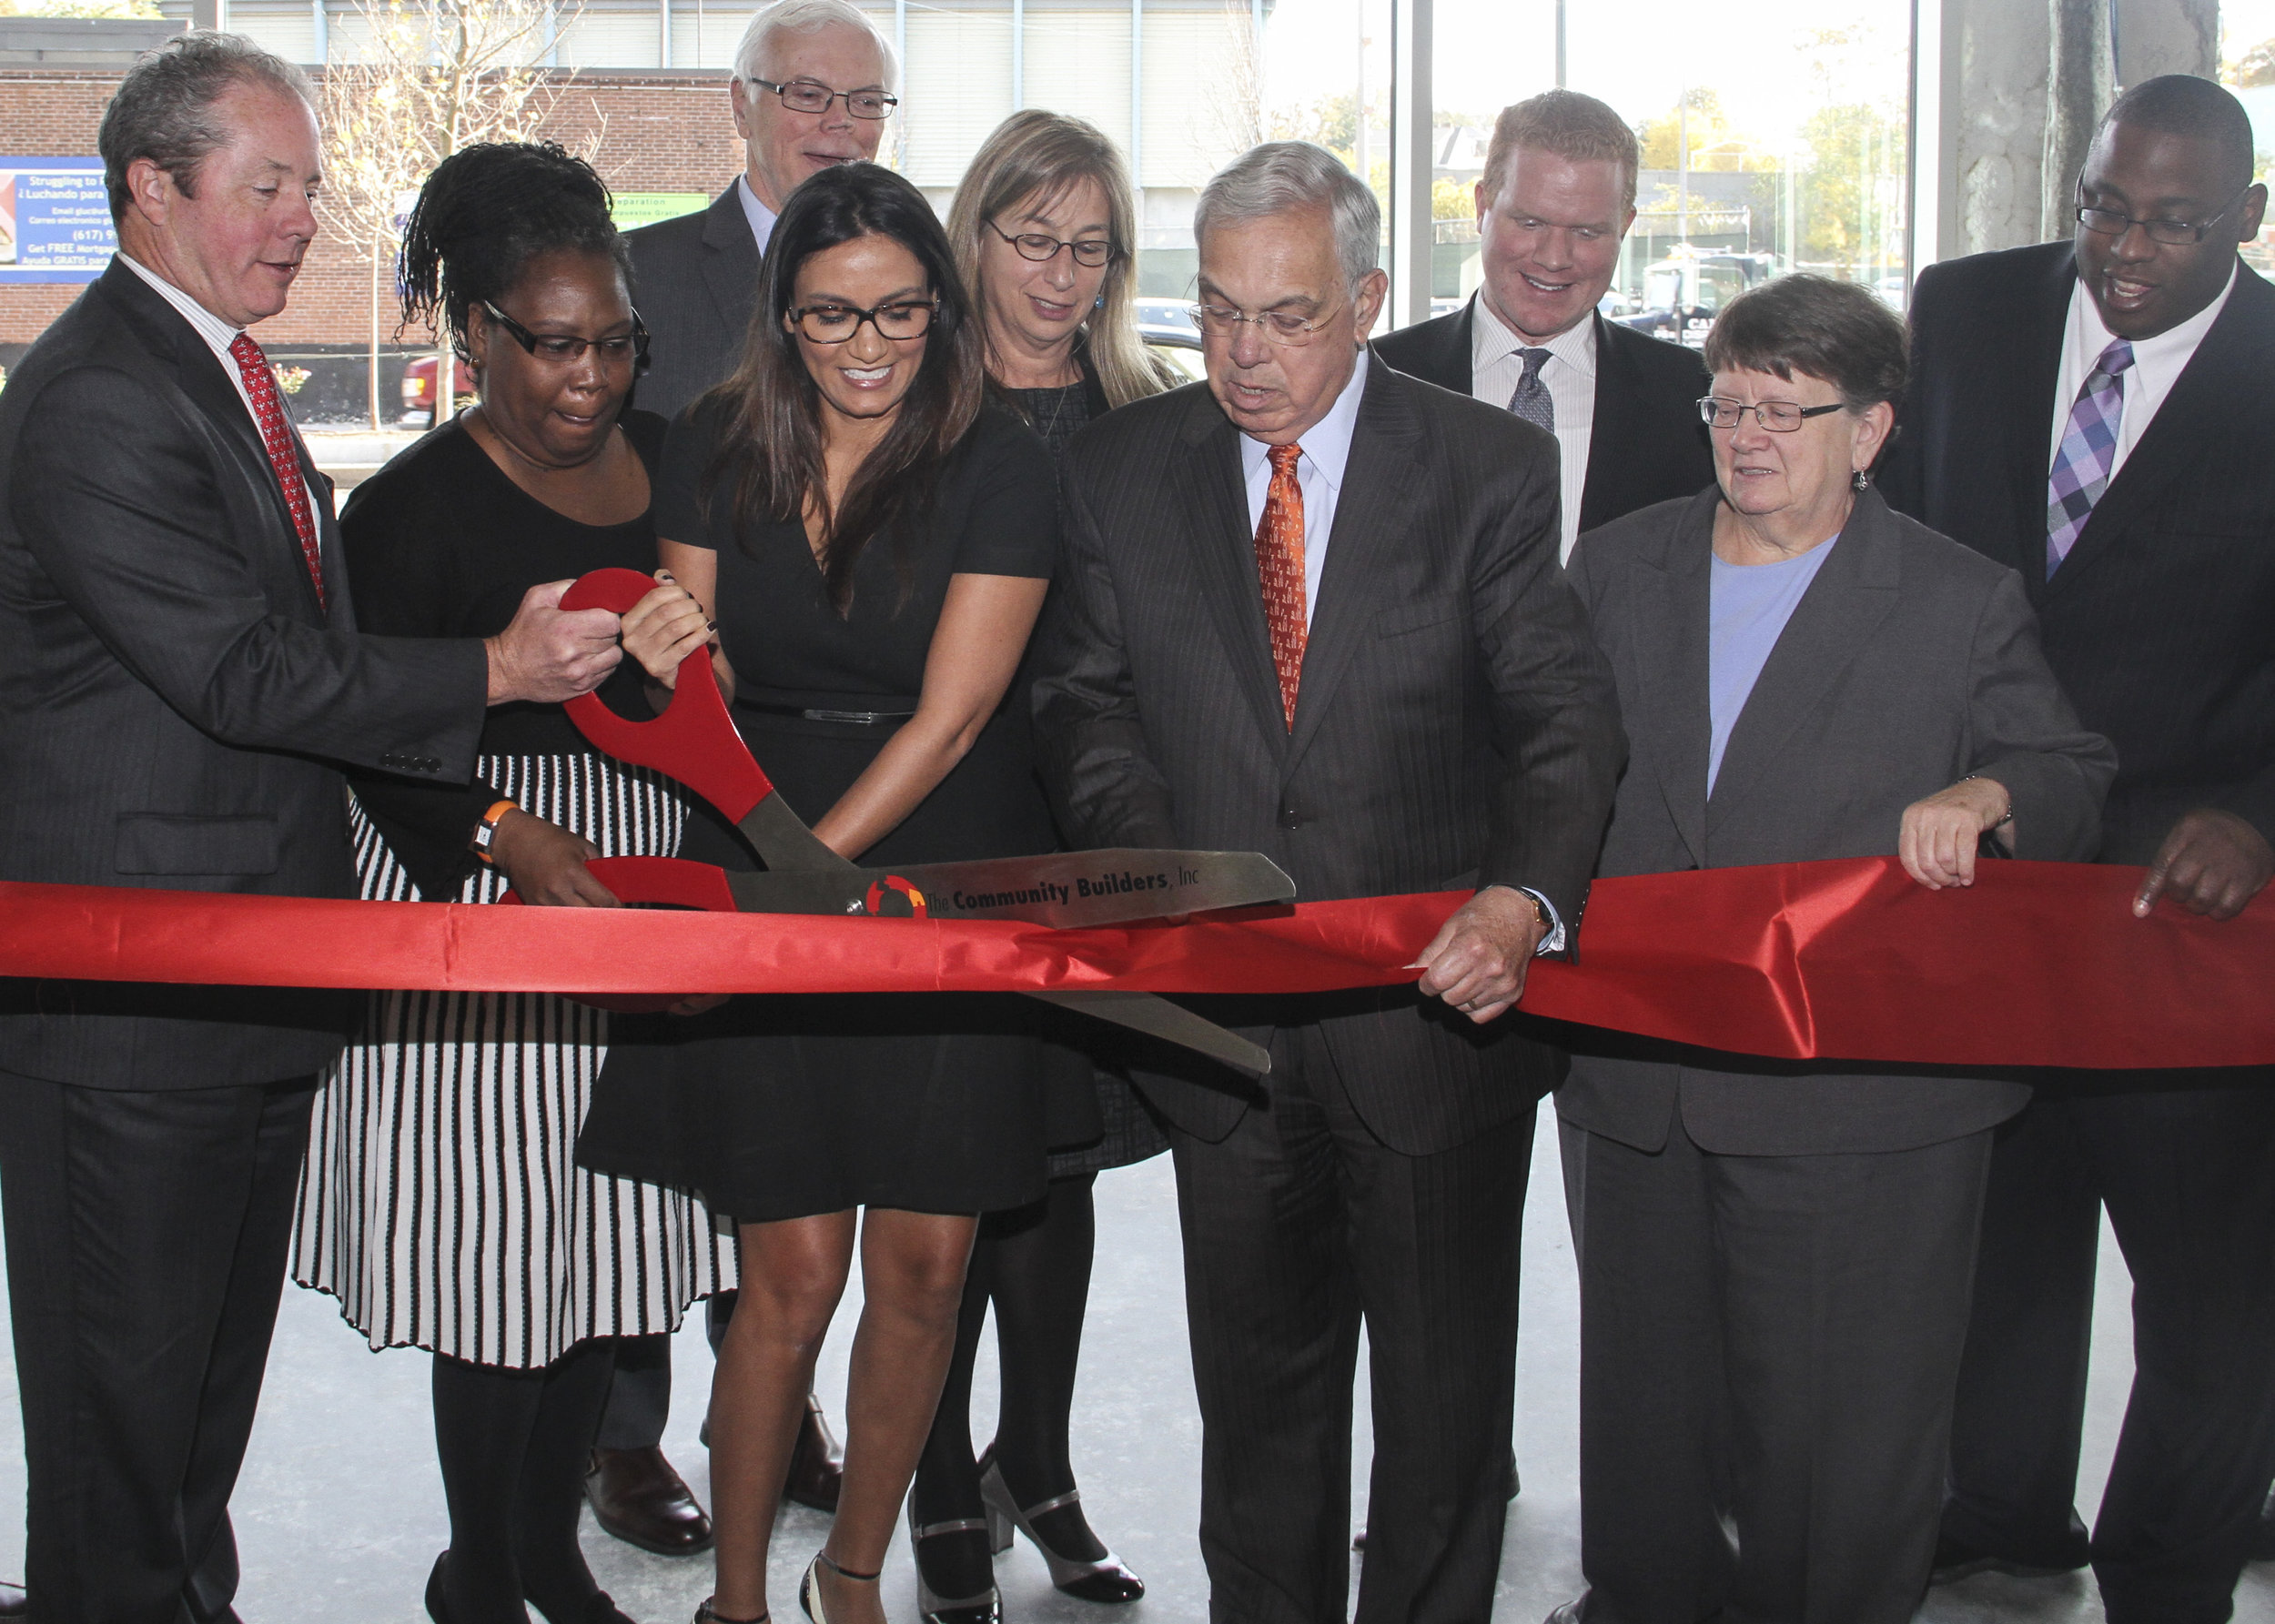 Boston Mayor Thomas Menino, center, takes part in the ribbon cutting with, from left, Bart Mitchell of the Community Builders, Chrystal Kornegay of Urban Edge, HIT's Tom O'Malley, 225 Centre resident Ana Durate, HUD's Barbara Fields, Boston City Councilor Matt O'Malley, State Rep. Elizabeth Malia, and Boston City Councilor Tito Jackson